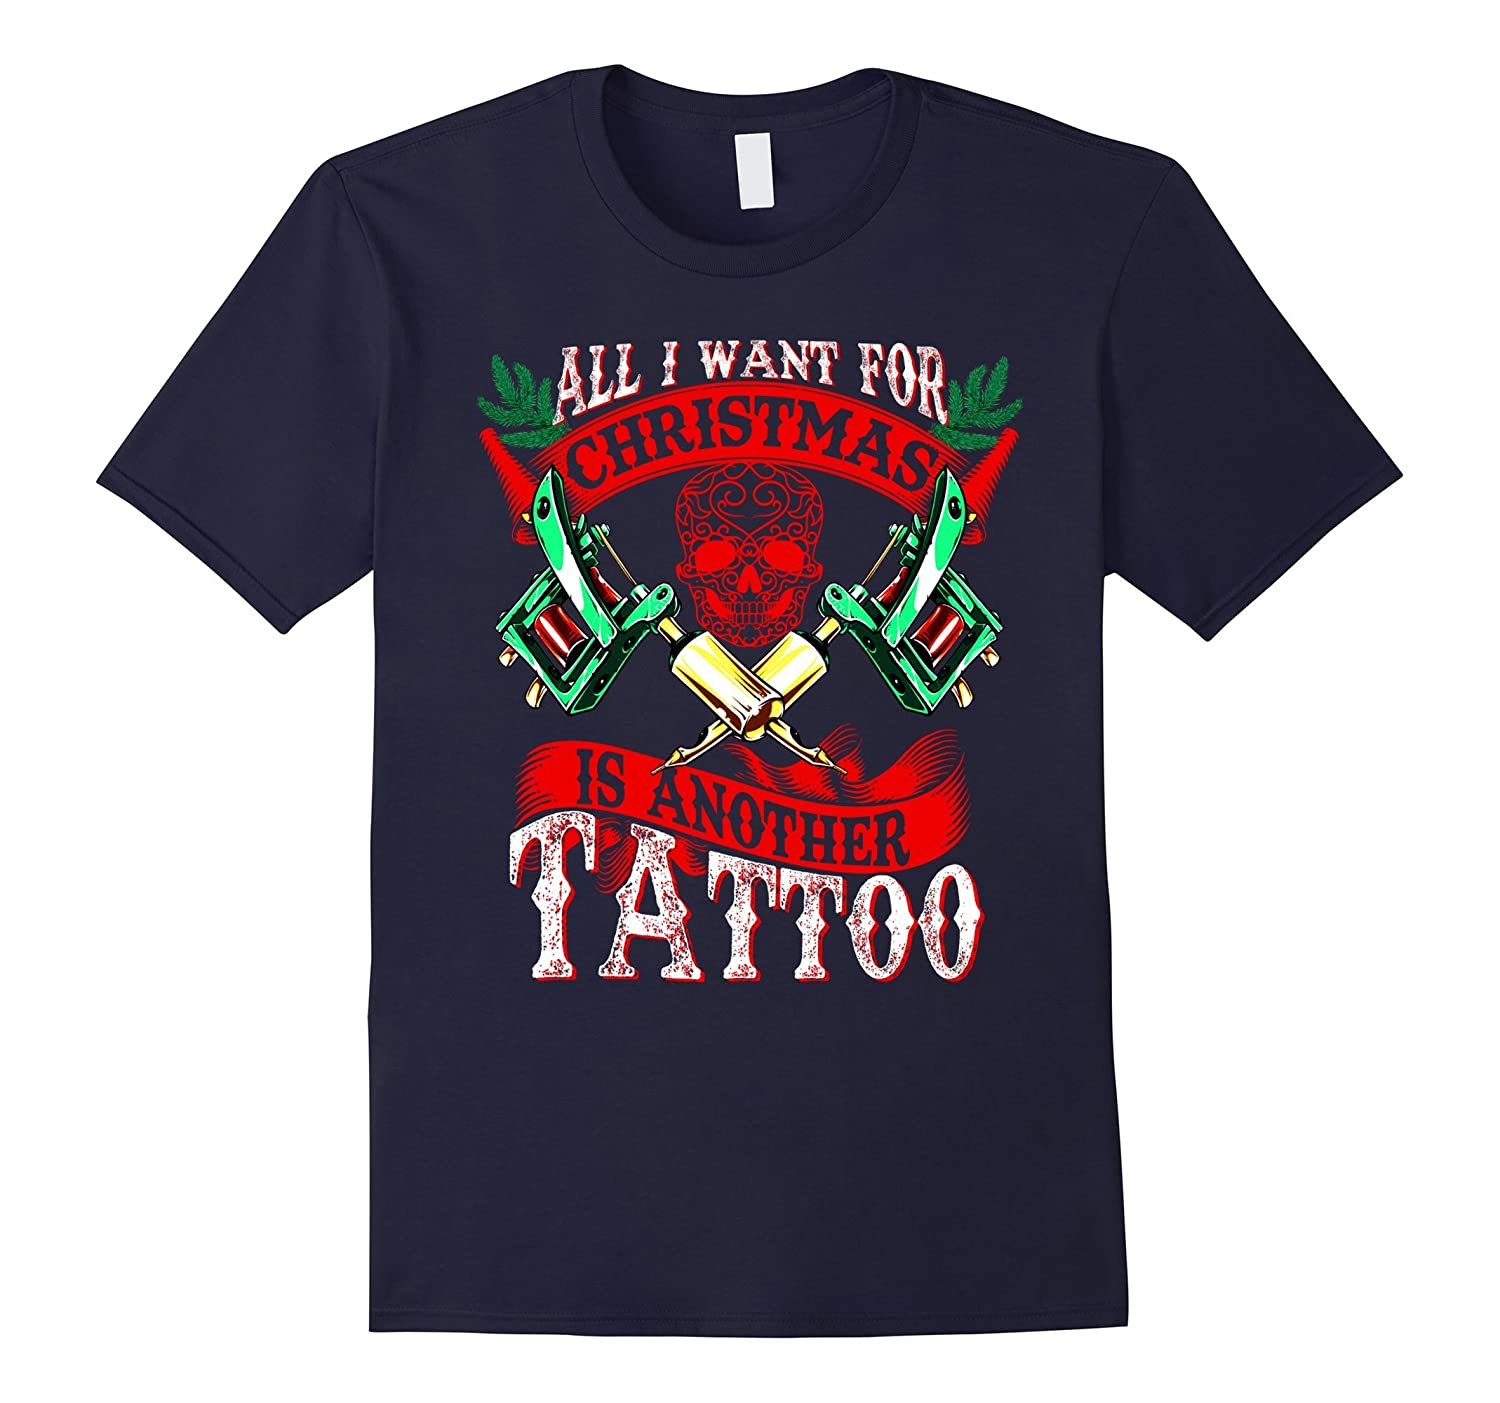 All I Want For Christmas is another tattoo t-shirt-TD